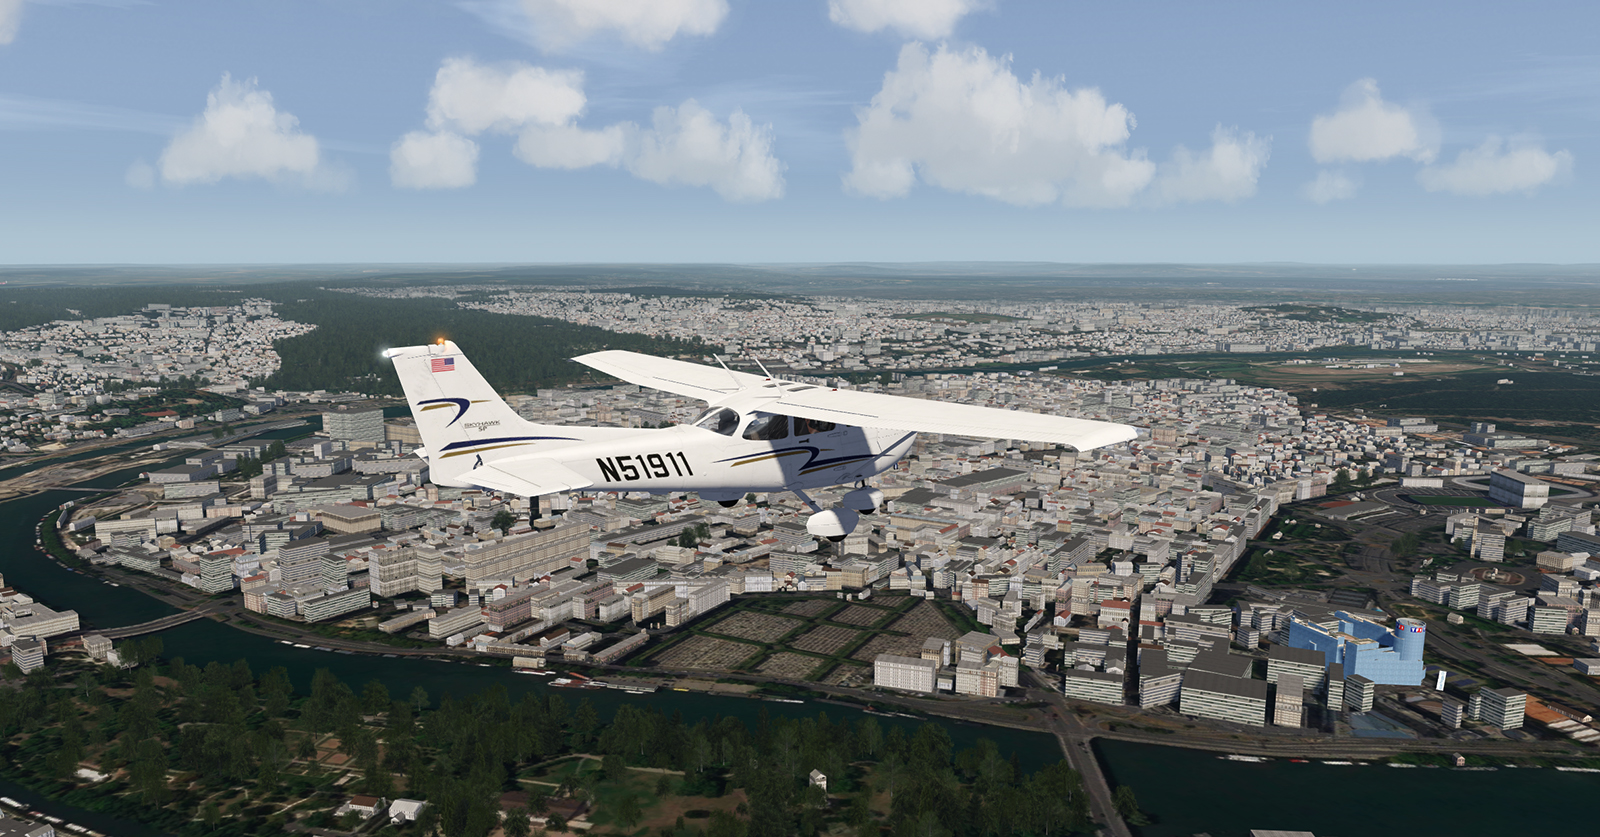 aerofly_fs_2_screenshot_15_20190920-0108